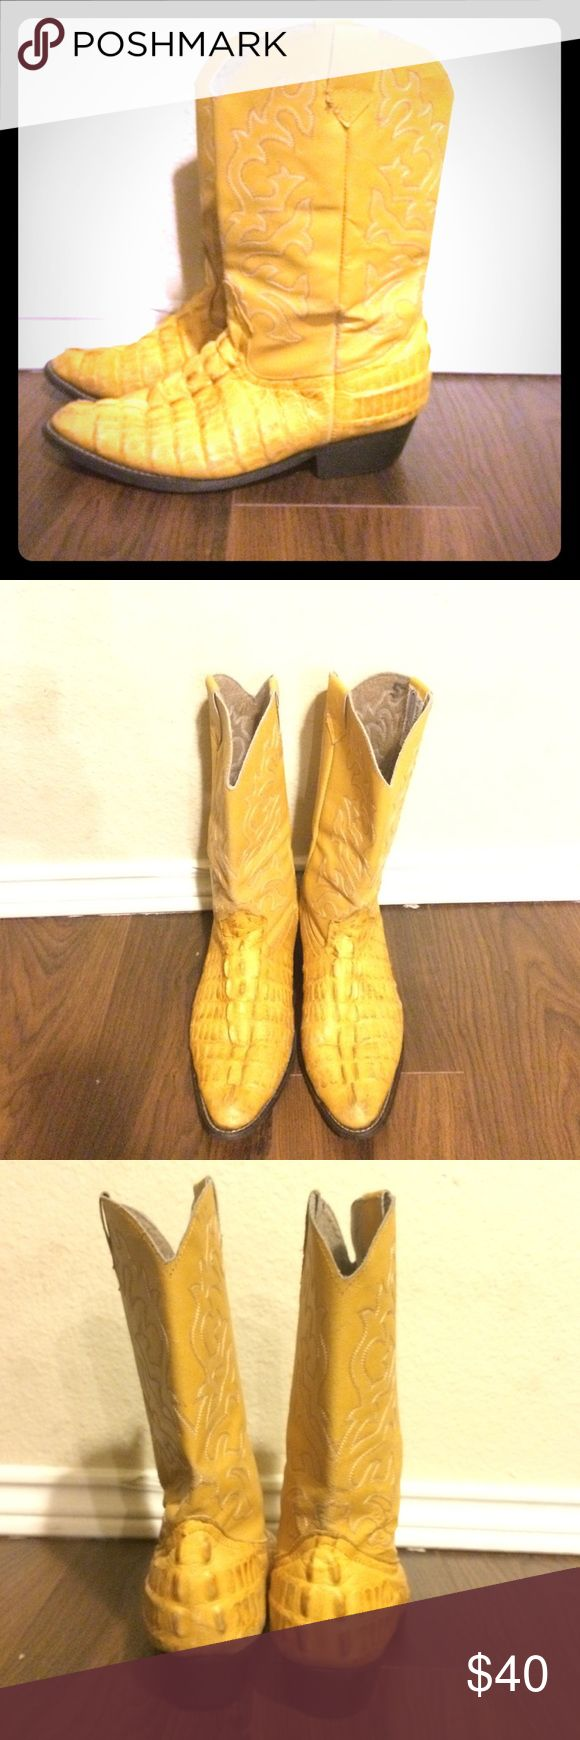 Vintage mustard alligator boots. Amazing, stylin mustard yellow alligator boots. Lightly worn, but in great condition for vintage. Shoes Ankle Boots & Booties